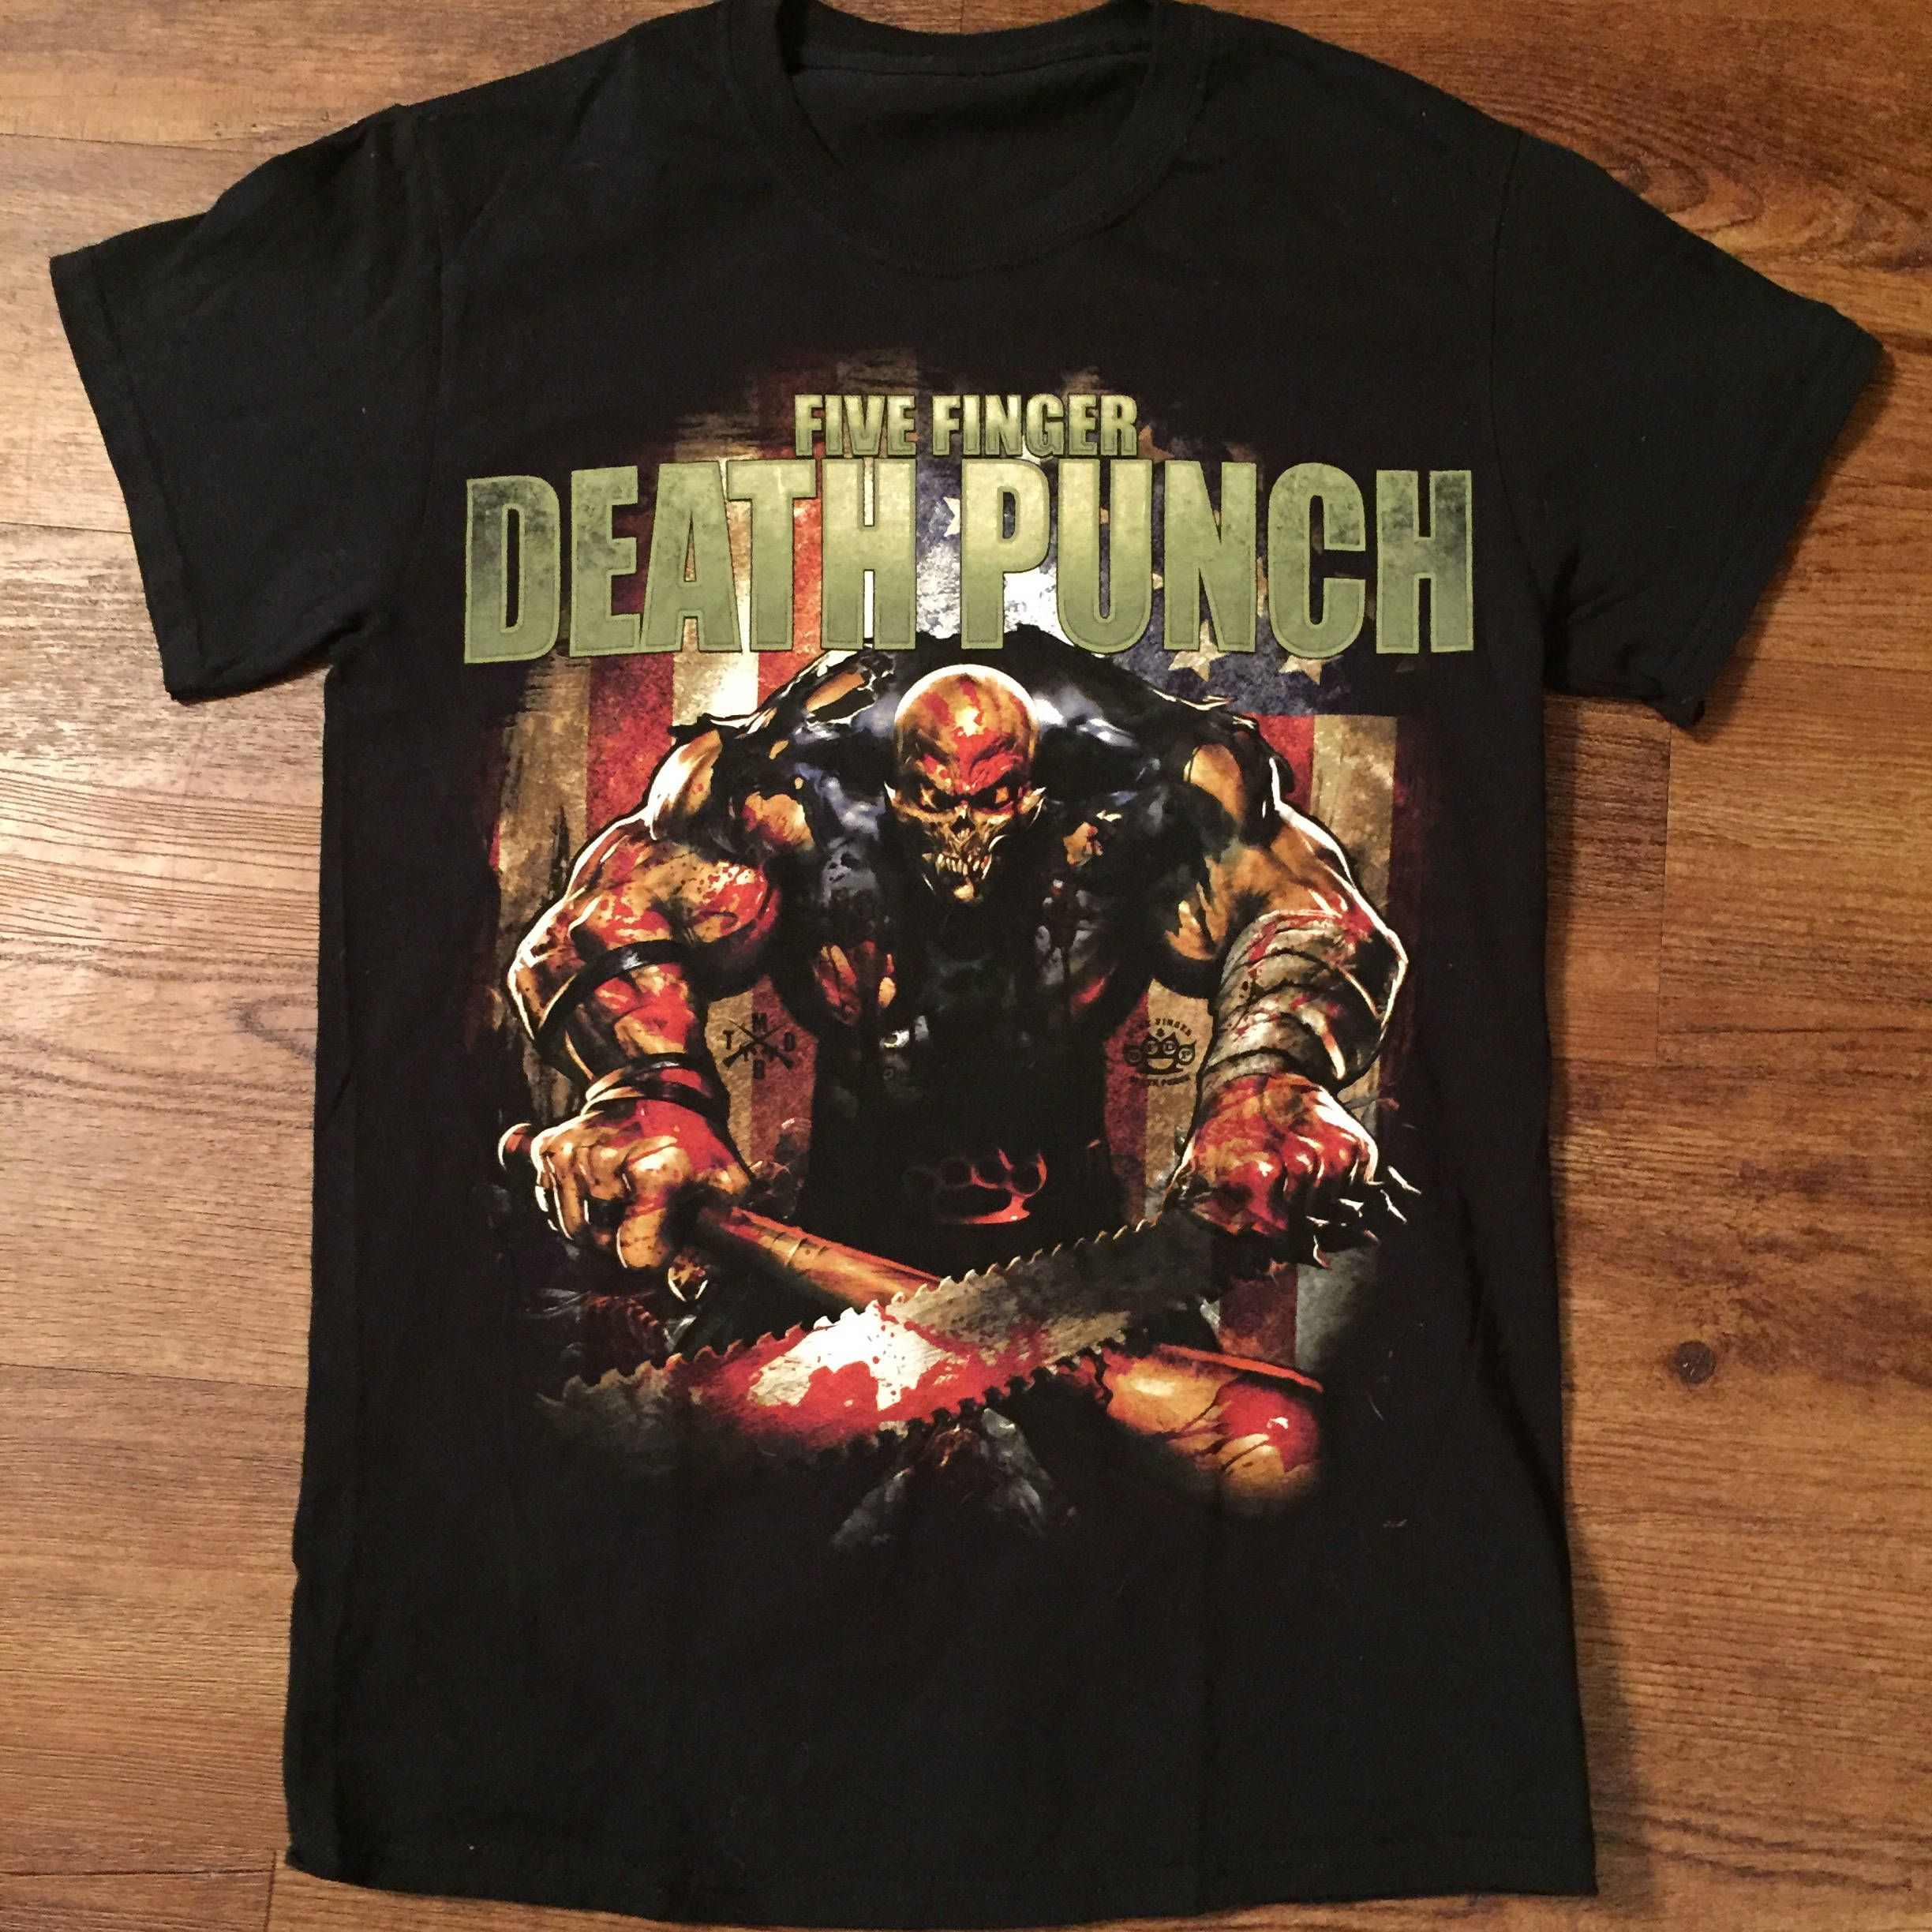 Pin By M Greyface On A Shirt With Images Metal Band Shirts Band Shirts Five Finger Death Punch